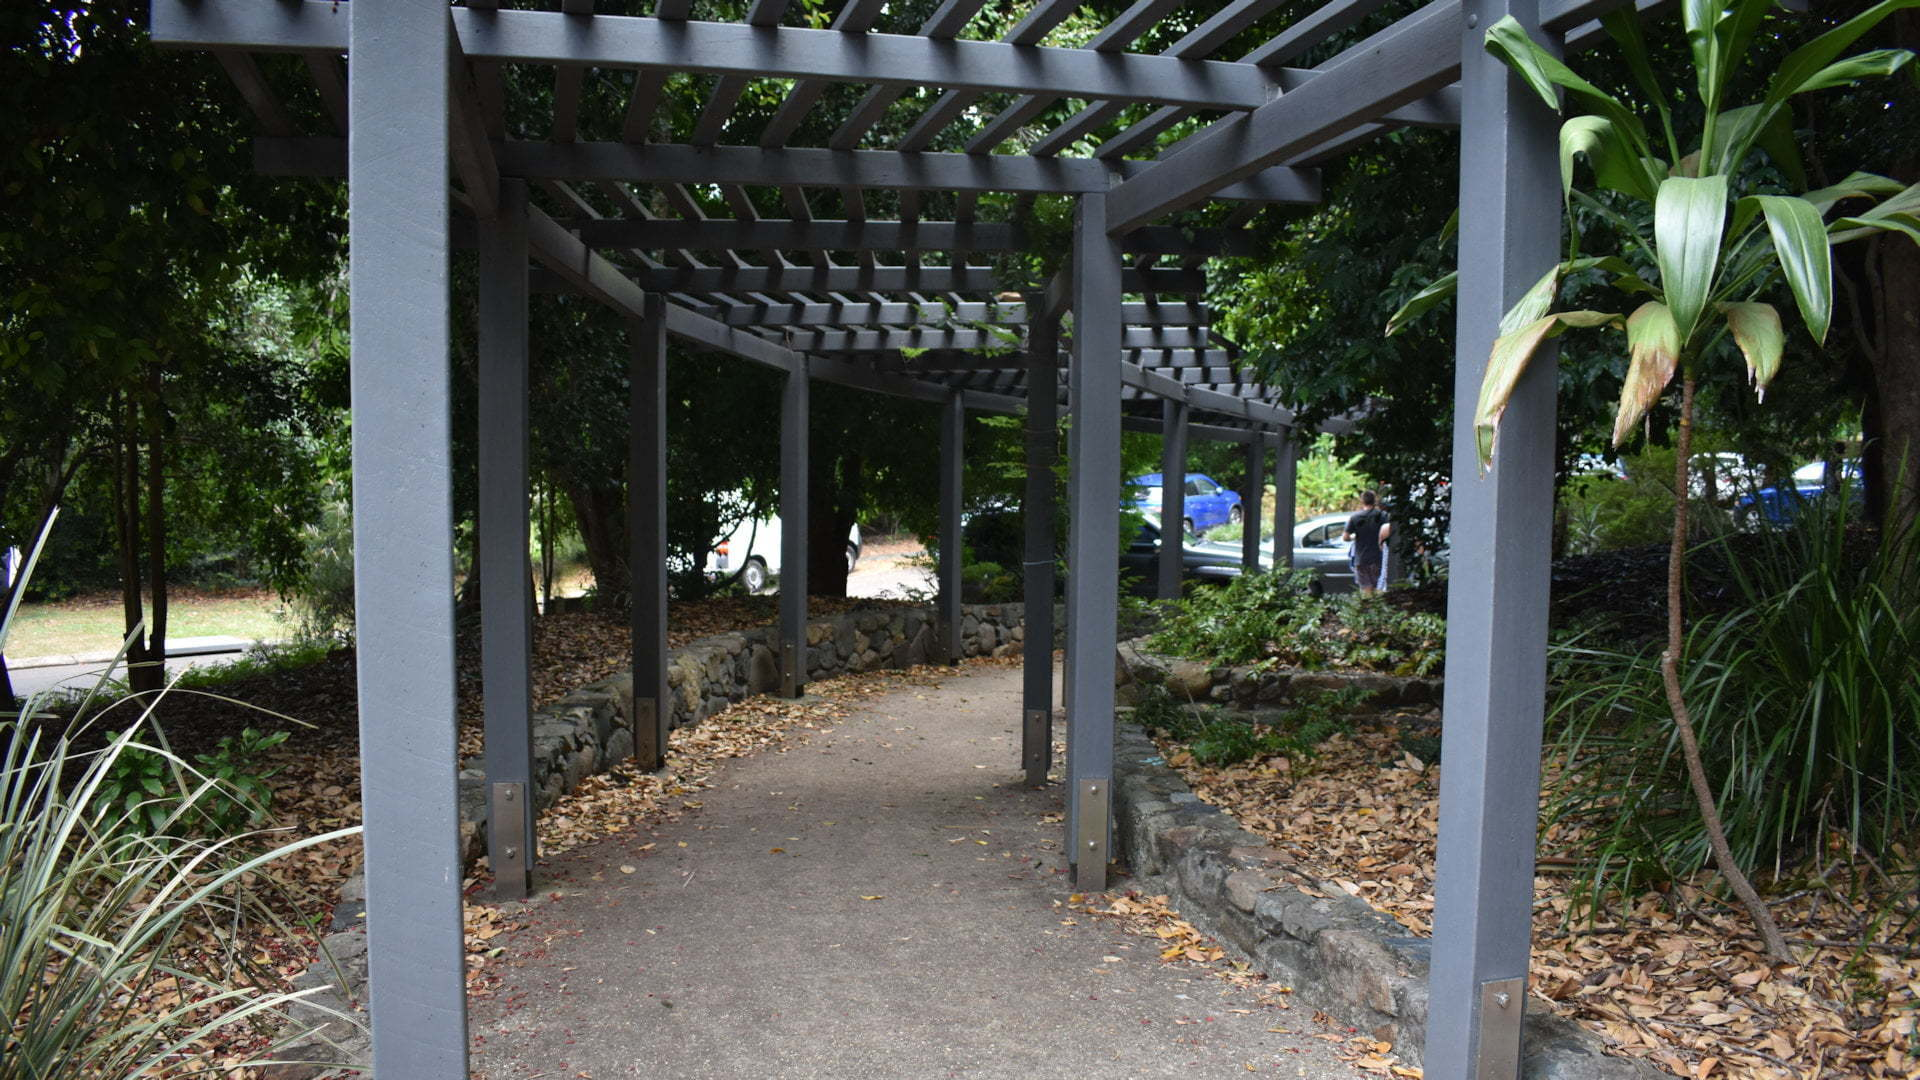 Pergola walkway with low stone wall edges, at the Edna Walling Memorial Garden in Buderim